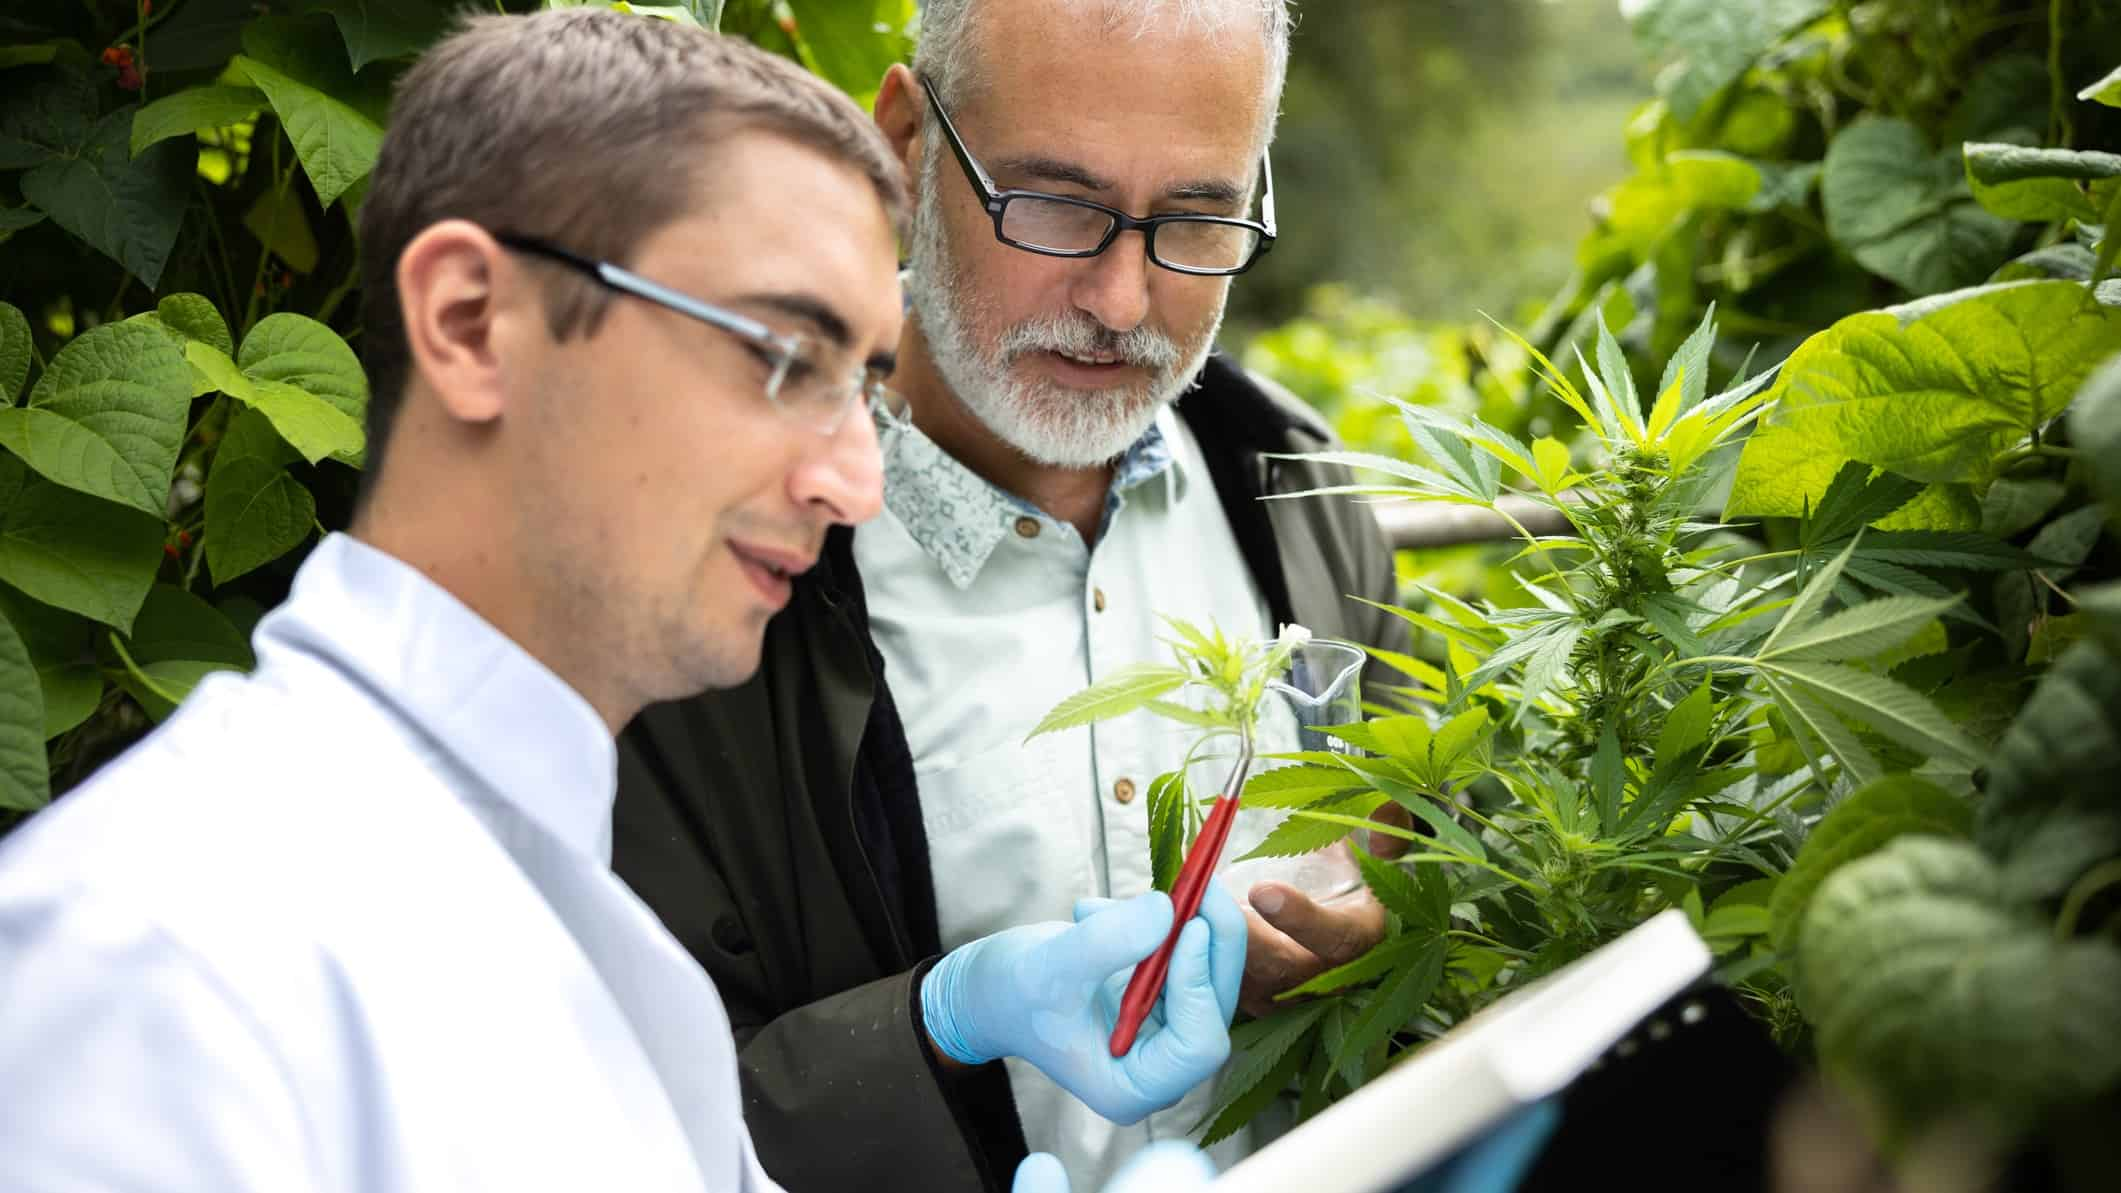 two men in formal business clothing closely inspect a bud from a cannabis crop.